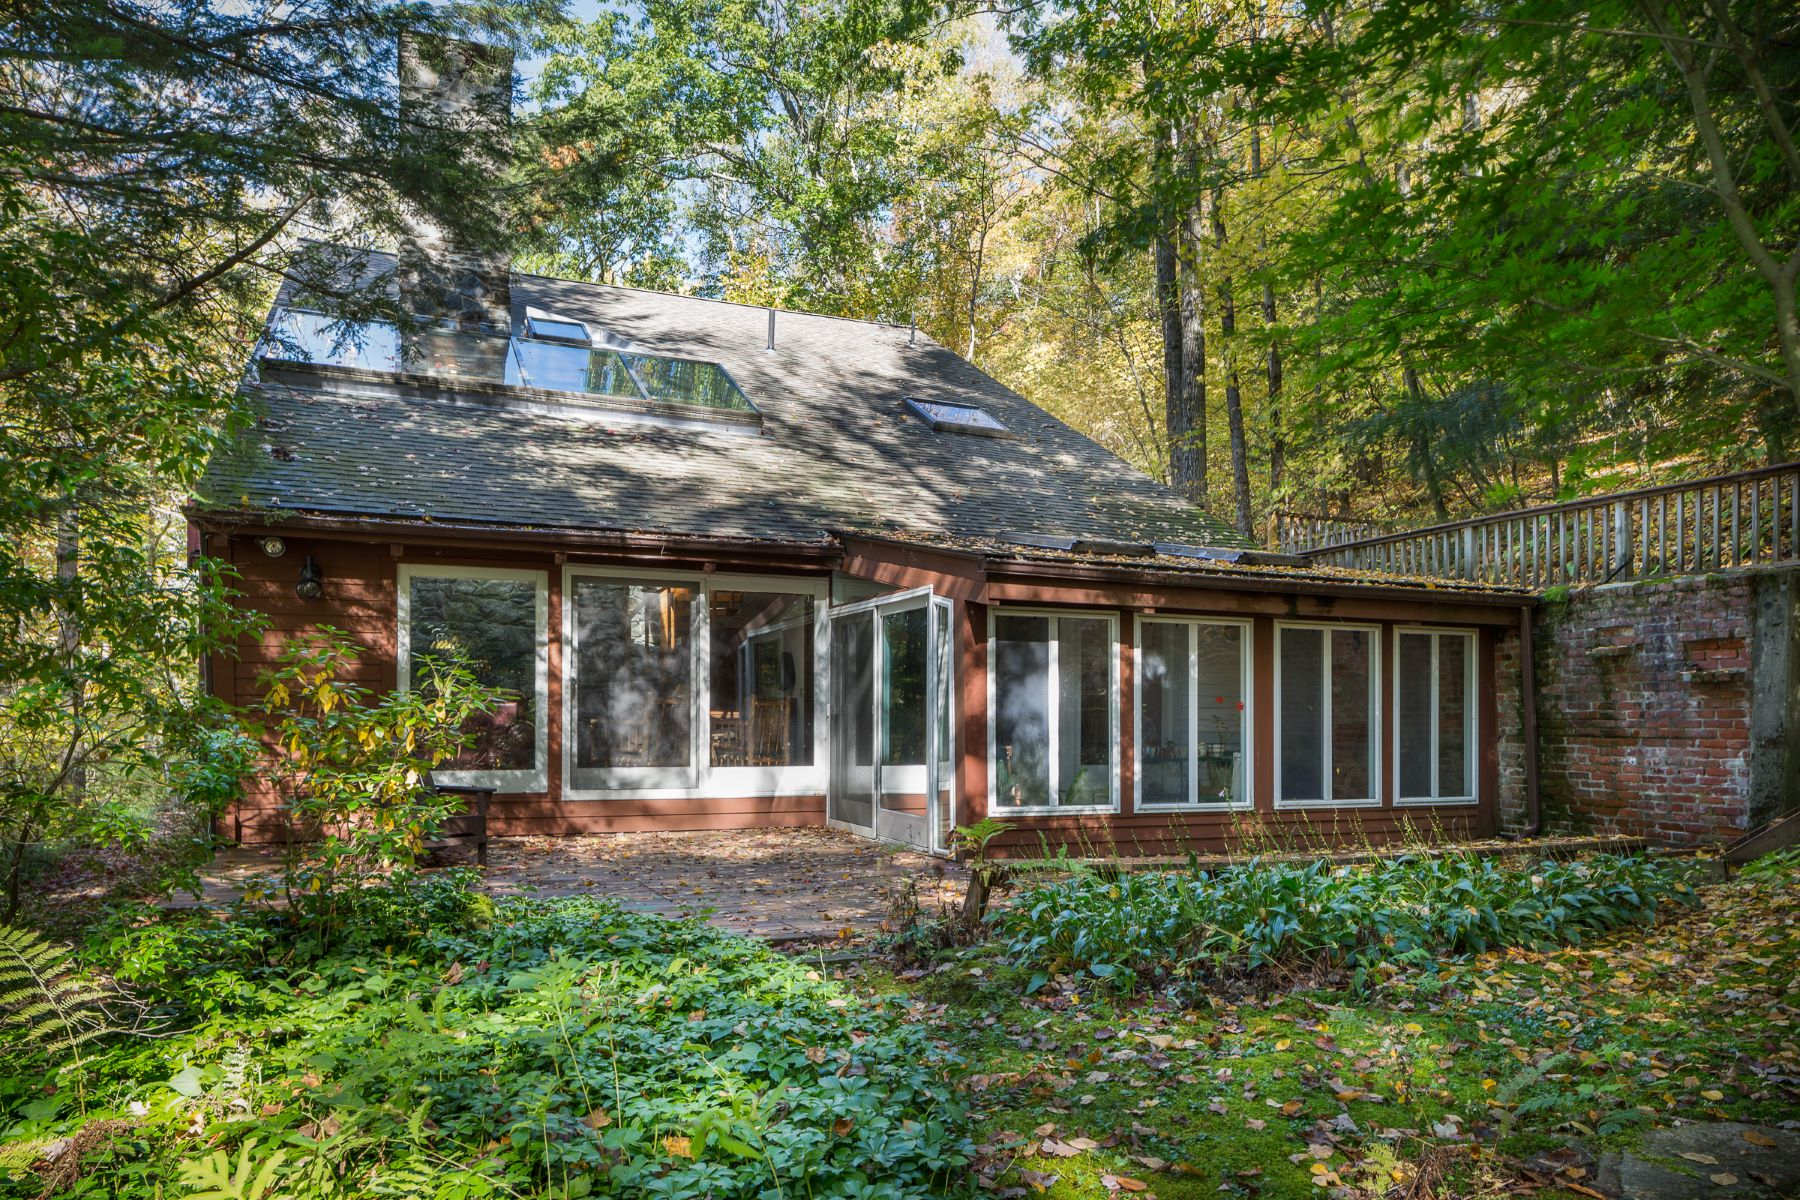 Single Family Home for Sale at Superb Modern and Traditional Chalet 56 Lenox Rd West Stockbridge, Massachusetts 01266 United States